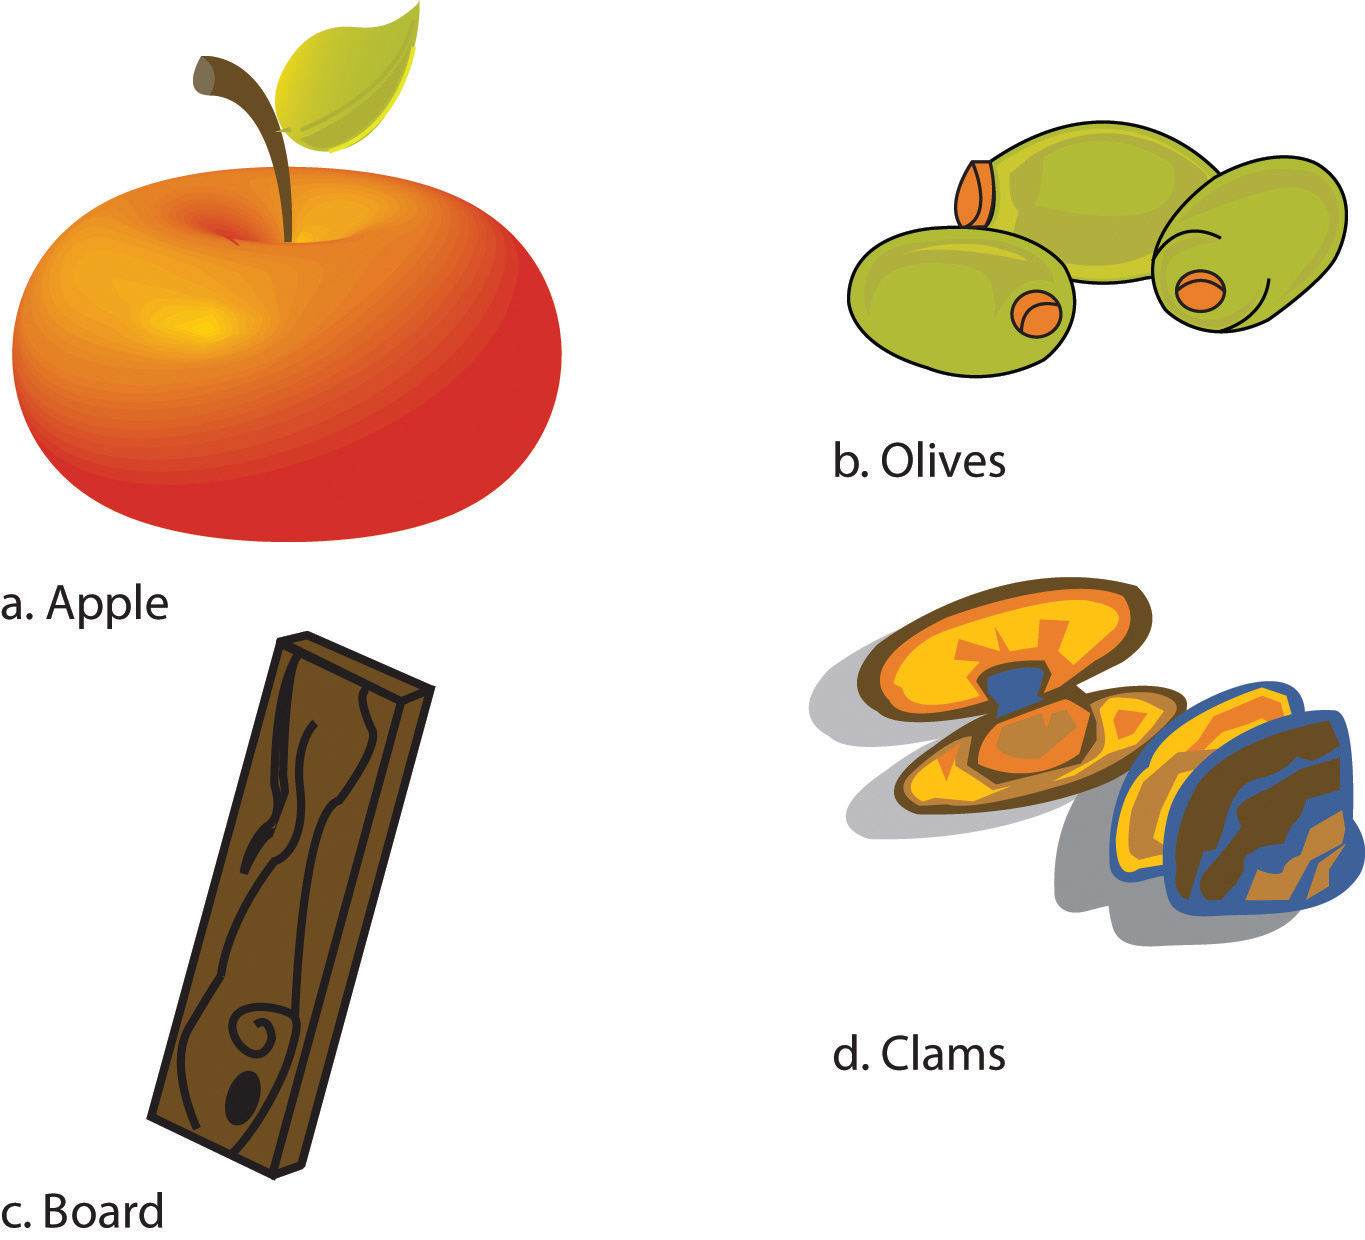 A collage of 4 items: a. Apple, b. Olives, c. Board, and d. Clams